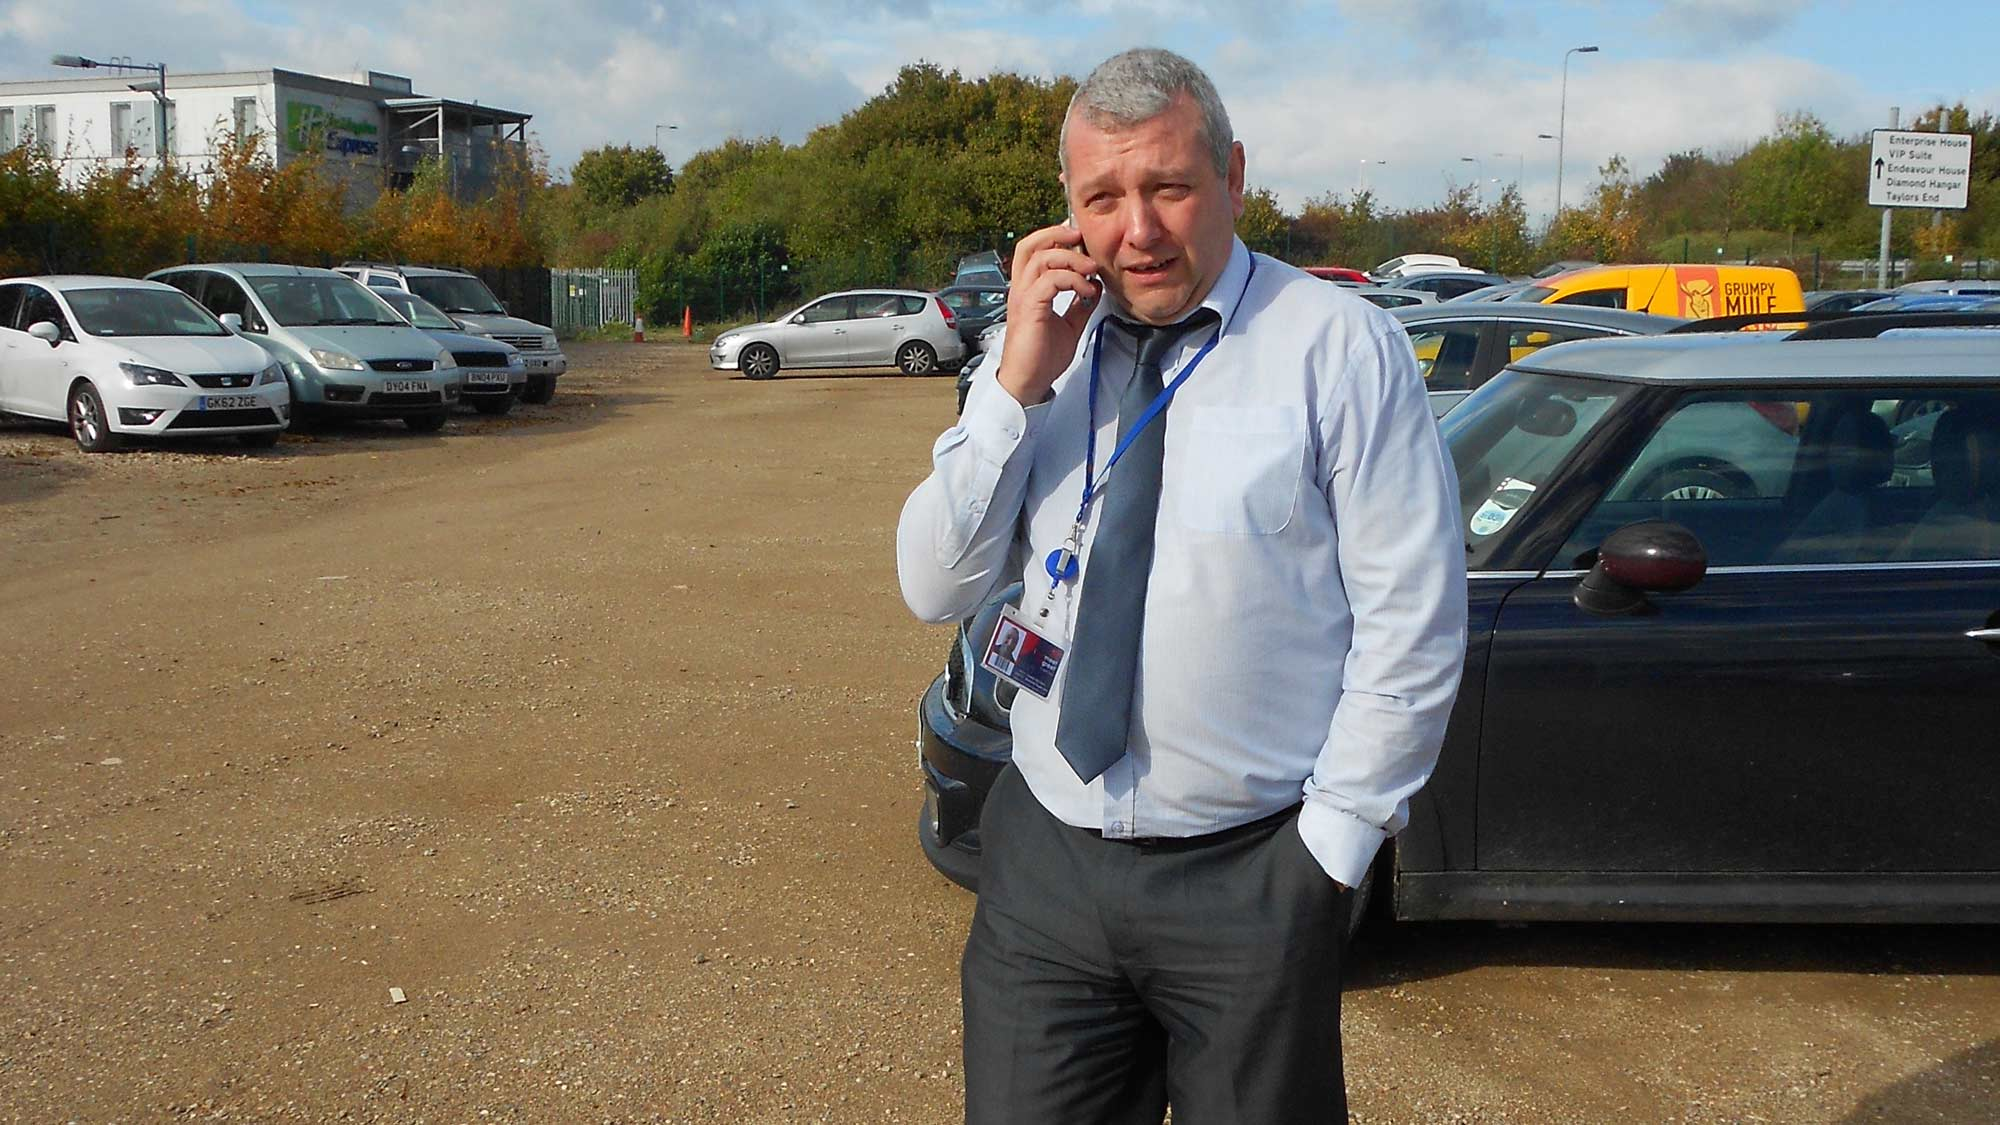 Clinton marston stansted manager i love i love meet and greet the most experienced meet and greet airport parking operator in the uk has announced the appointment of clinton marston as its new m4hsunfo